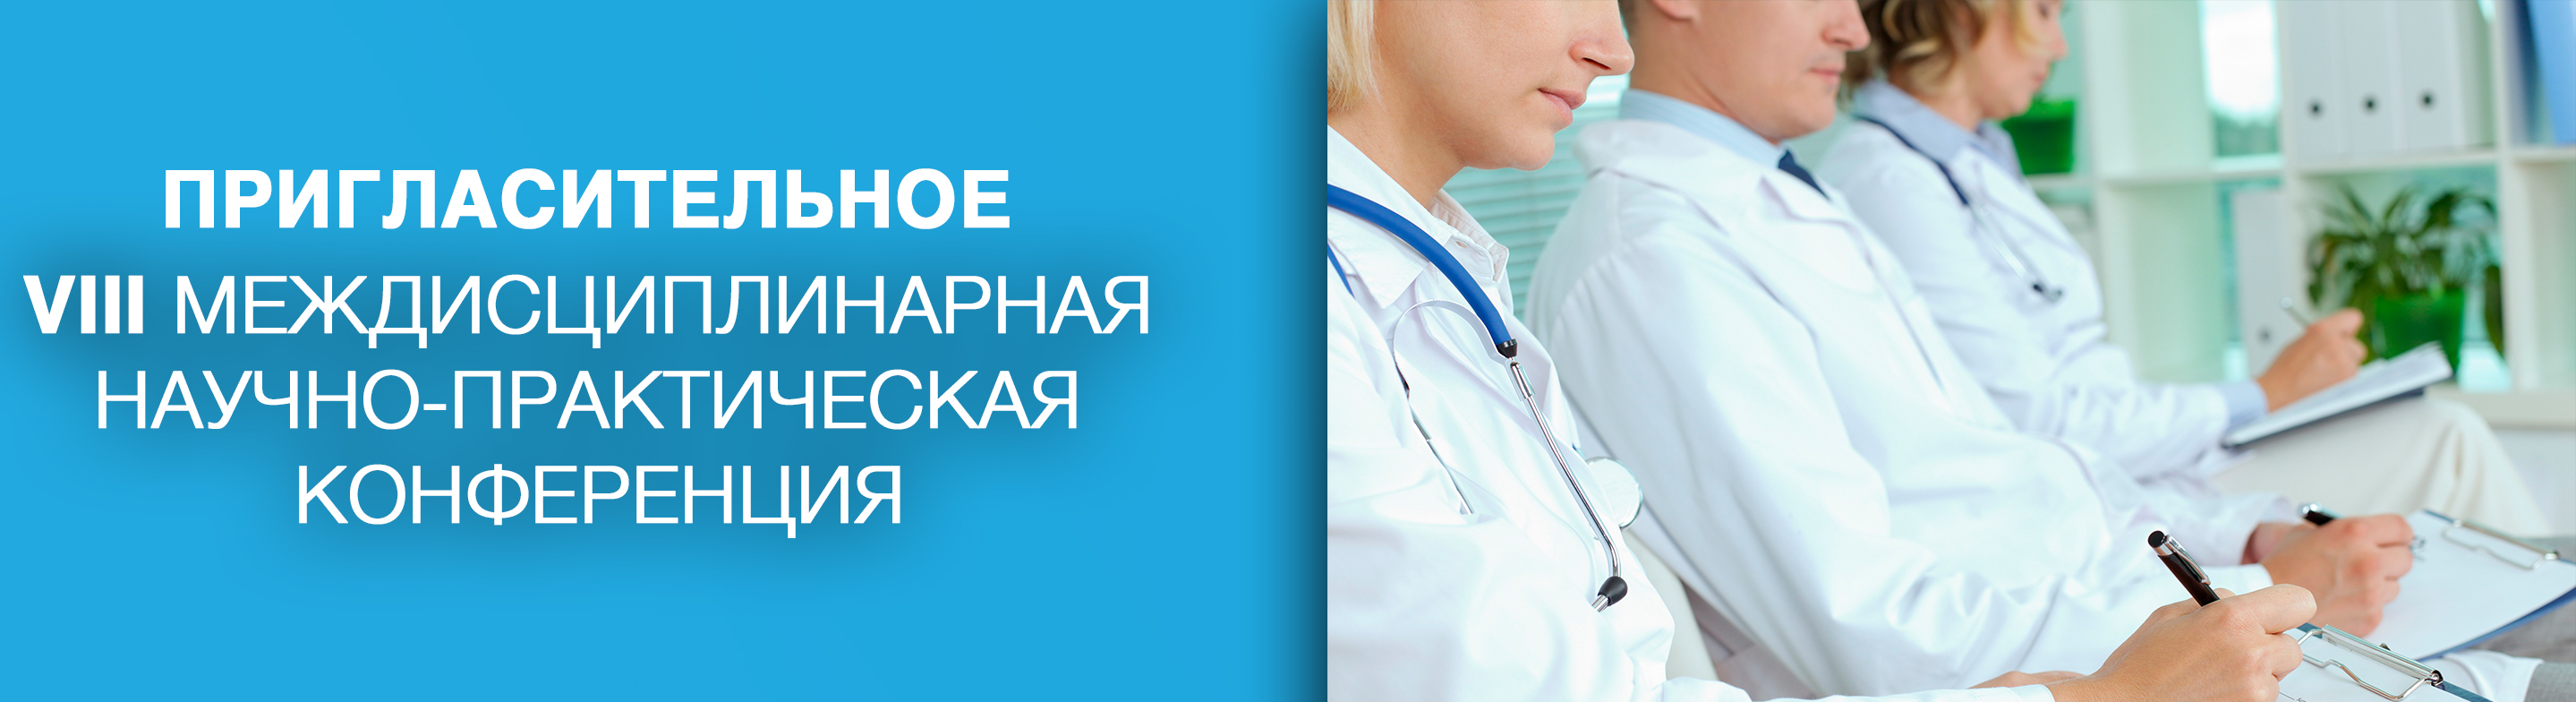 //nb-clinic.ru/wp-content/uploads/2018/01/viii.jpg